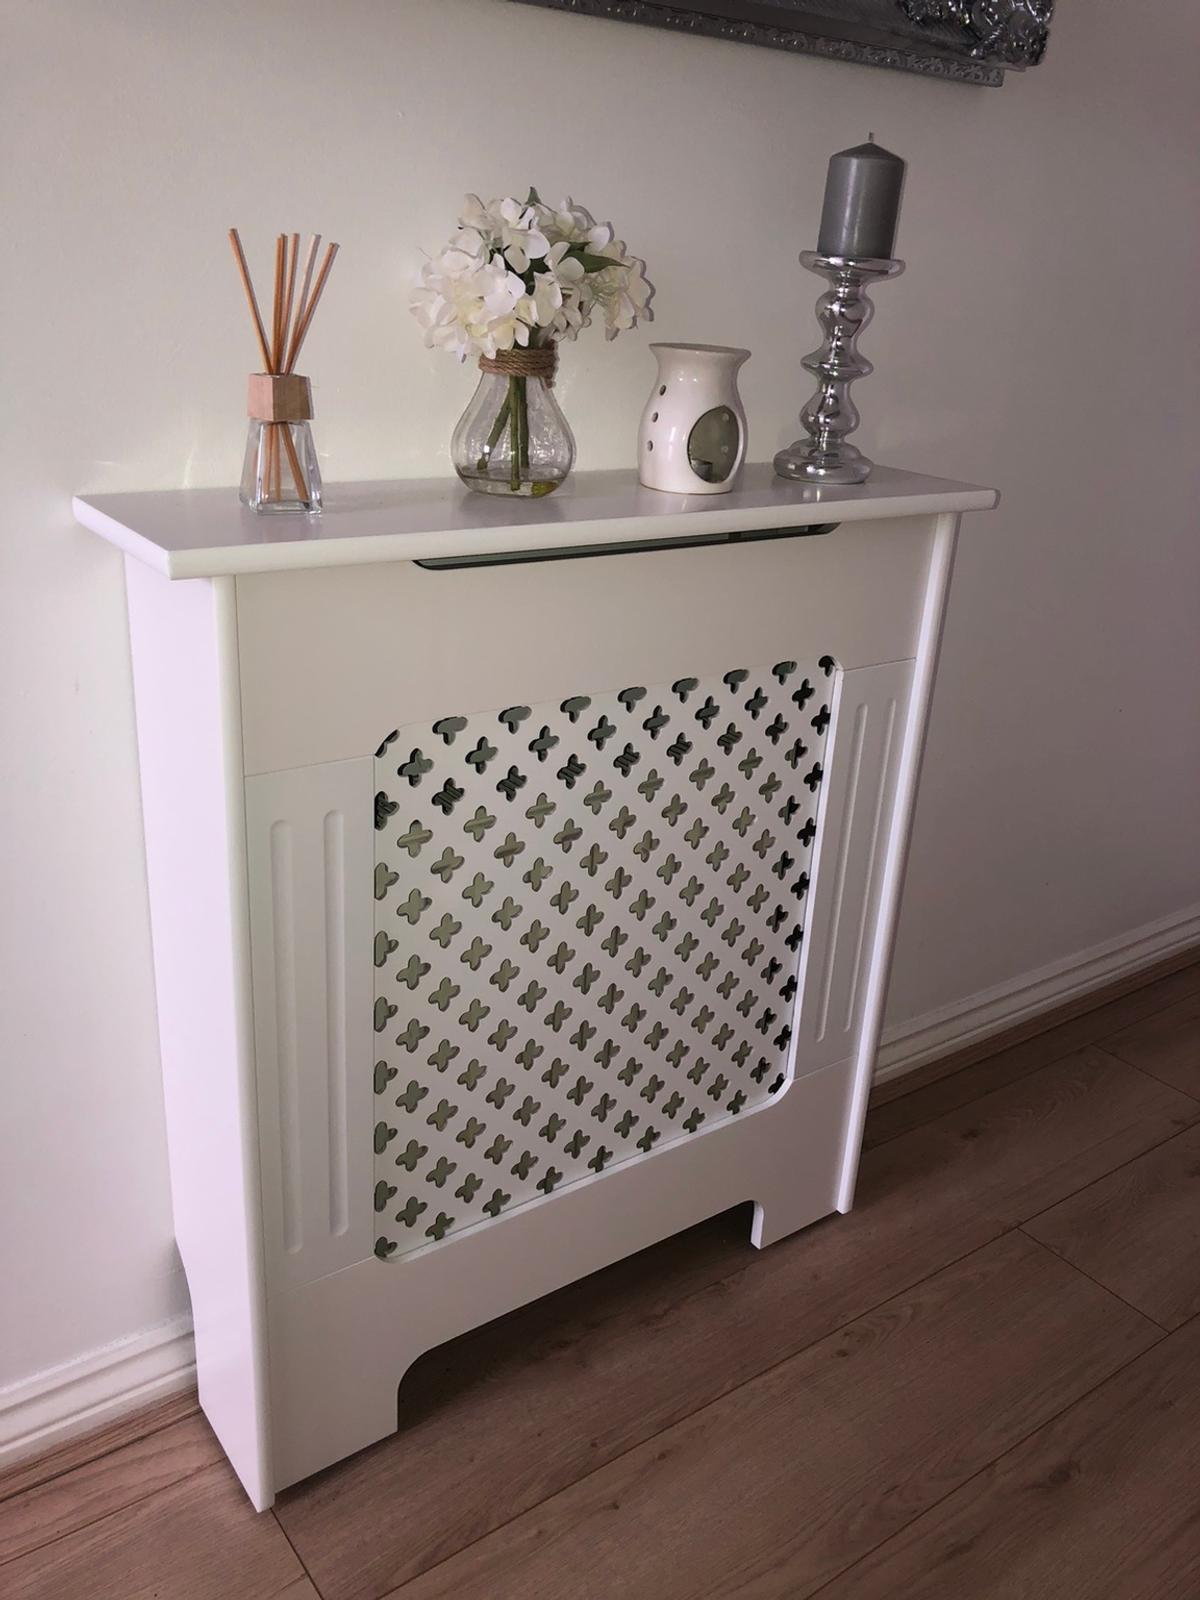 Small Radiator Cover Brand New In Ts28 Wingate For 30 00 For Sale Shpock